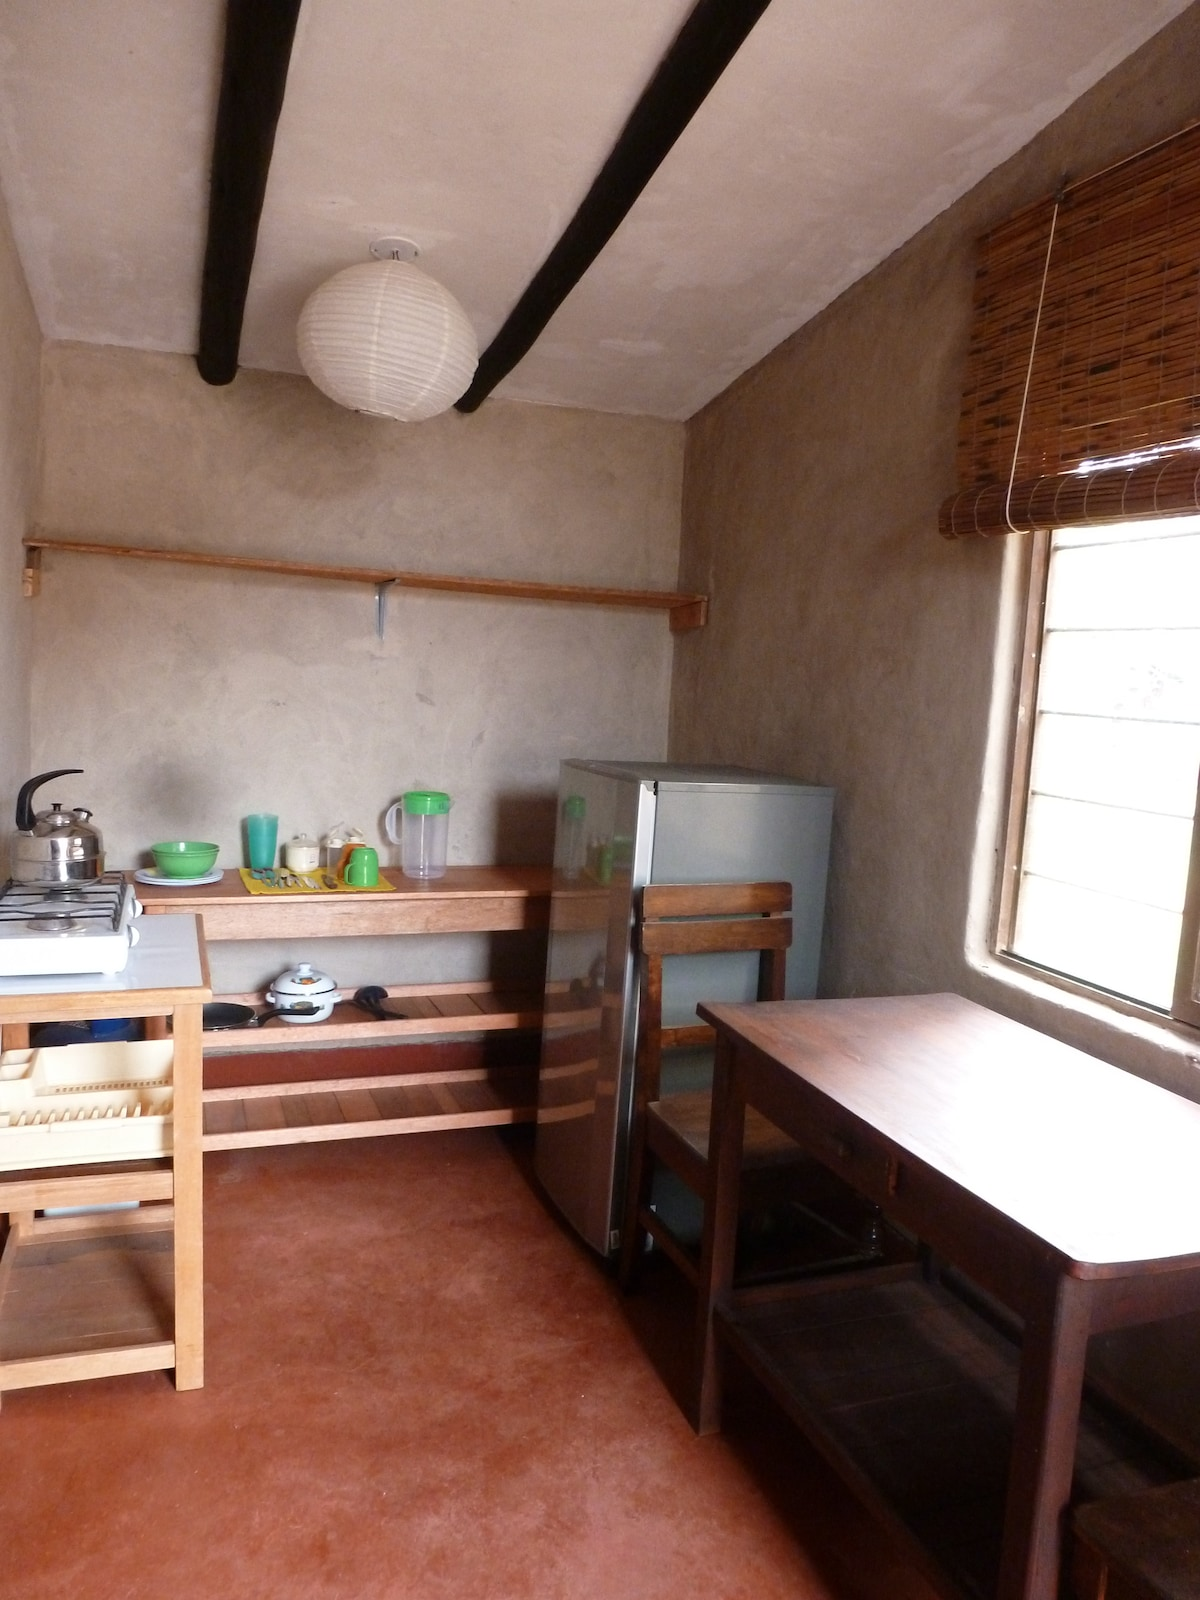 Small mini-kitchen with refrigerator, two burner gas stove top, basic cooking & eating utensils and equipment.